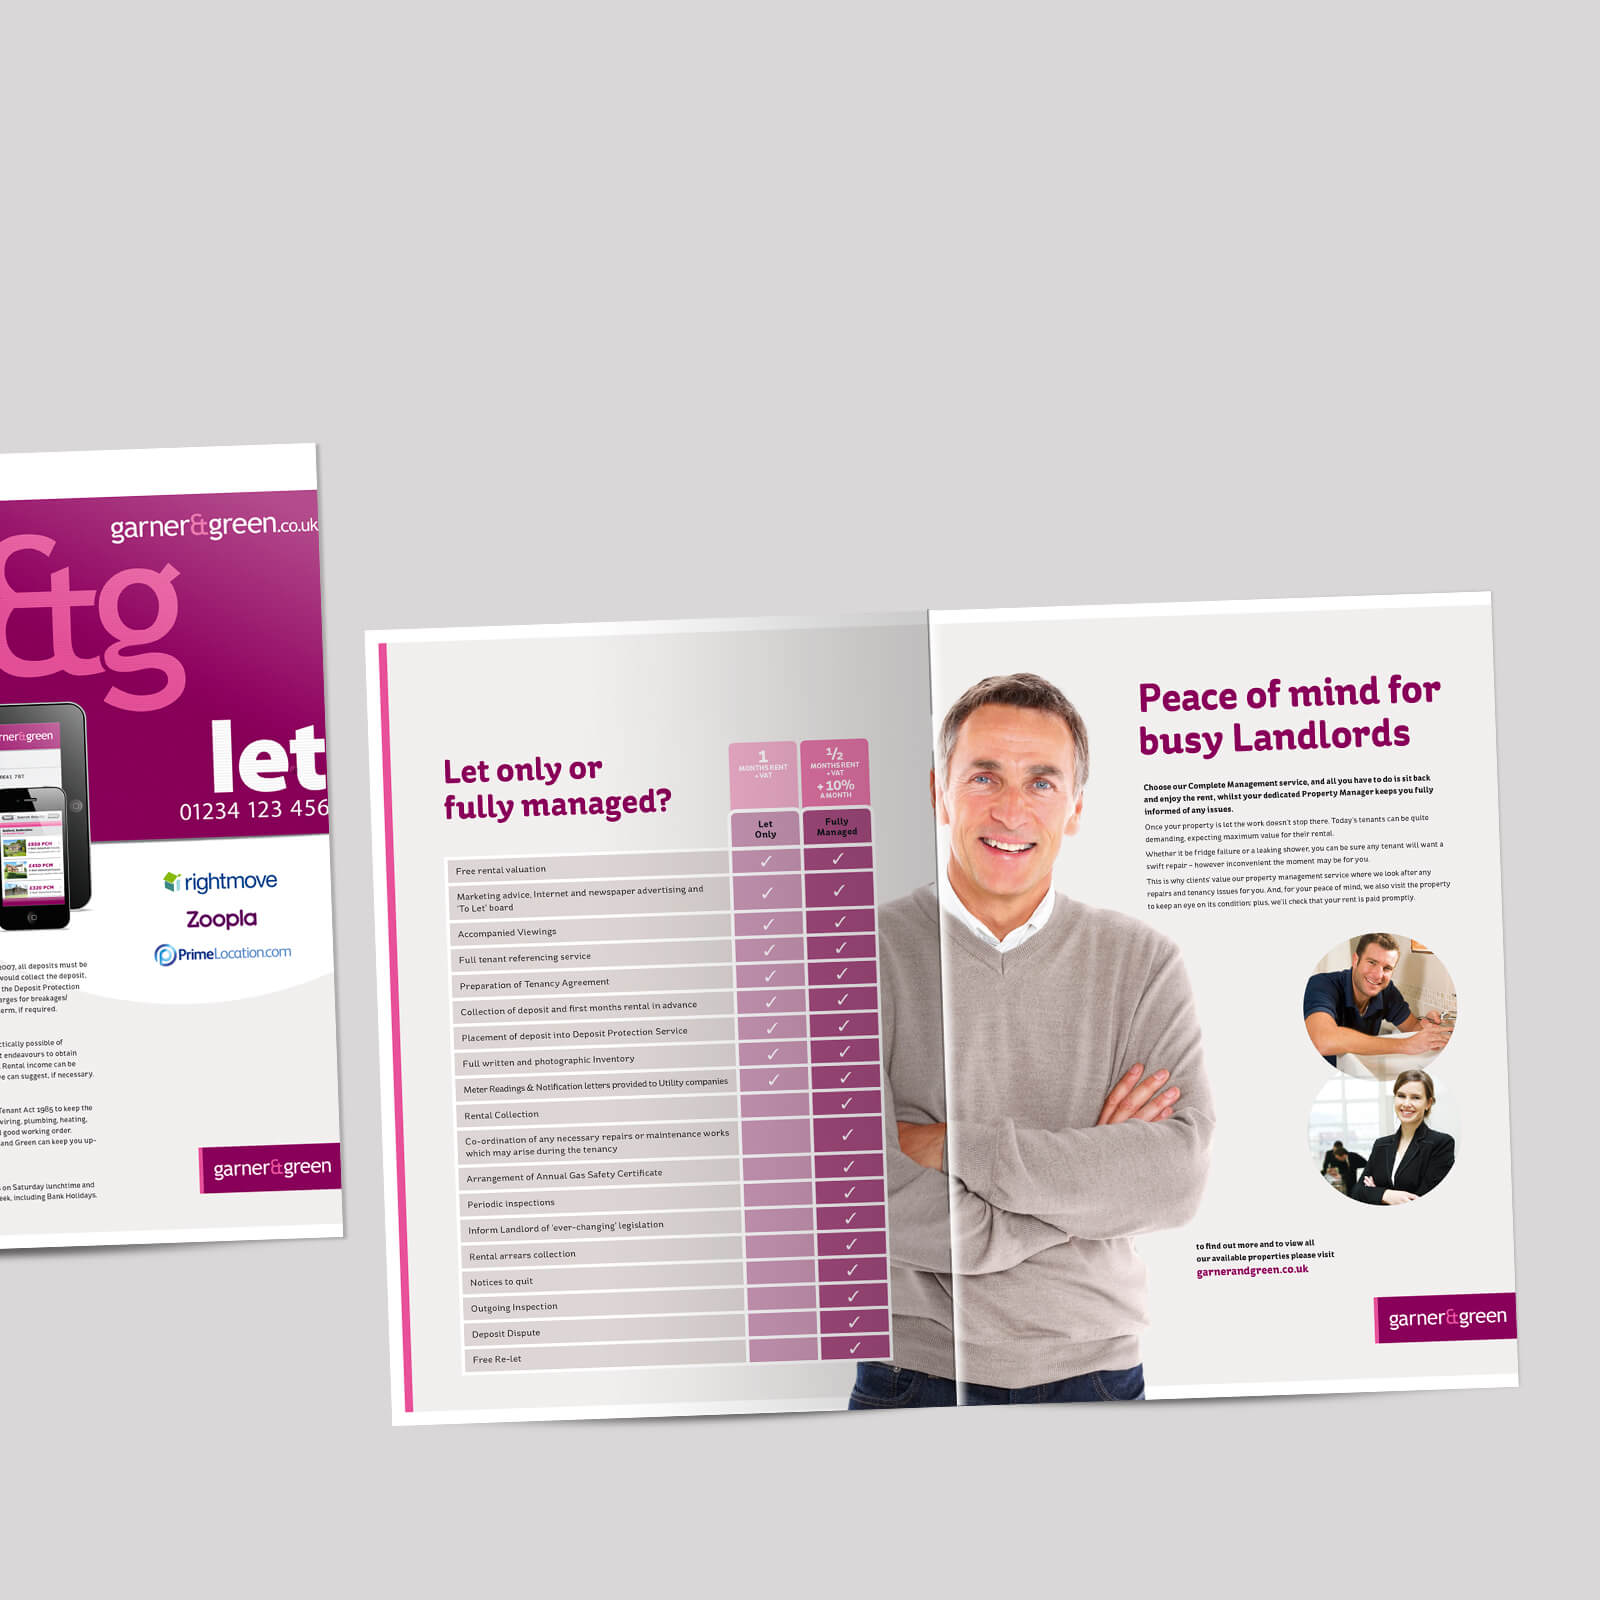 Landlord lettings guide 8p Letting 03